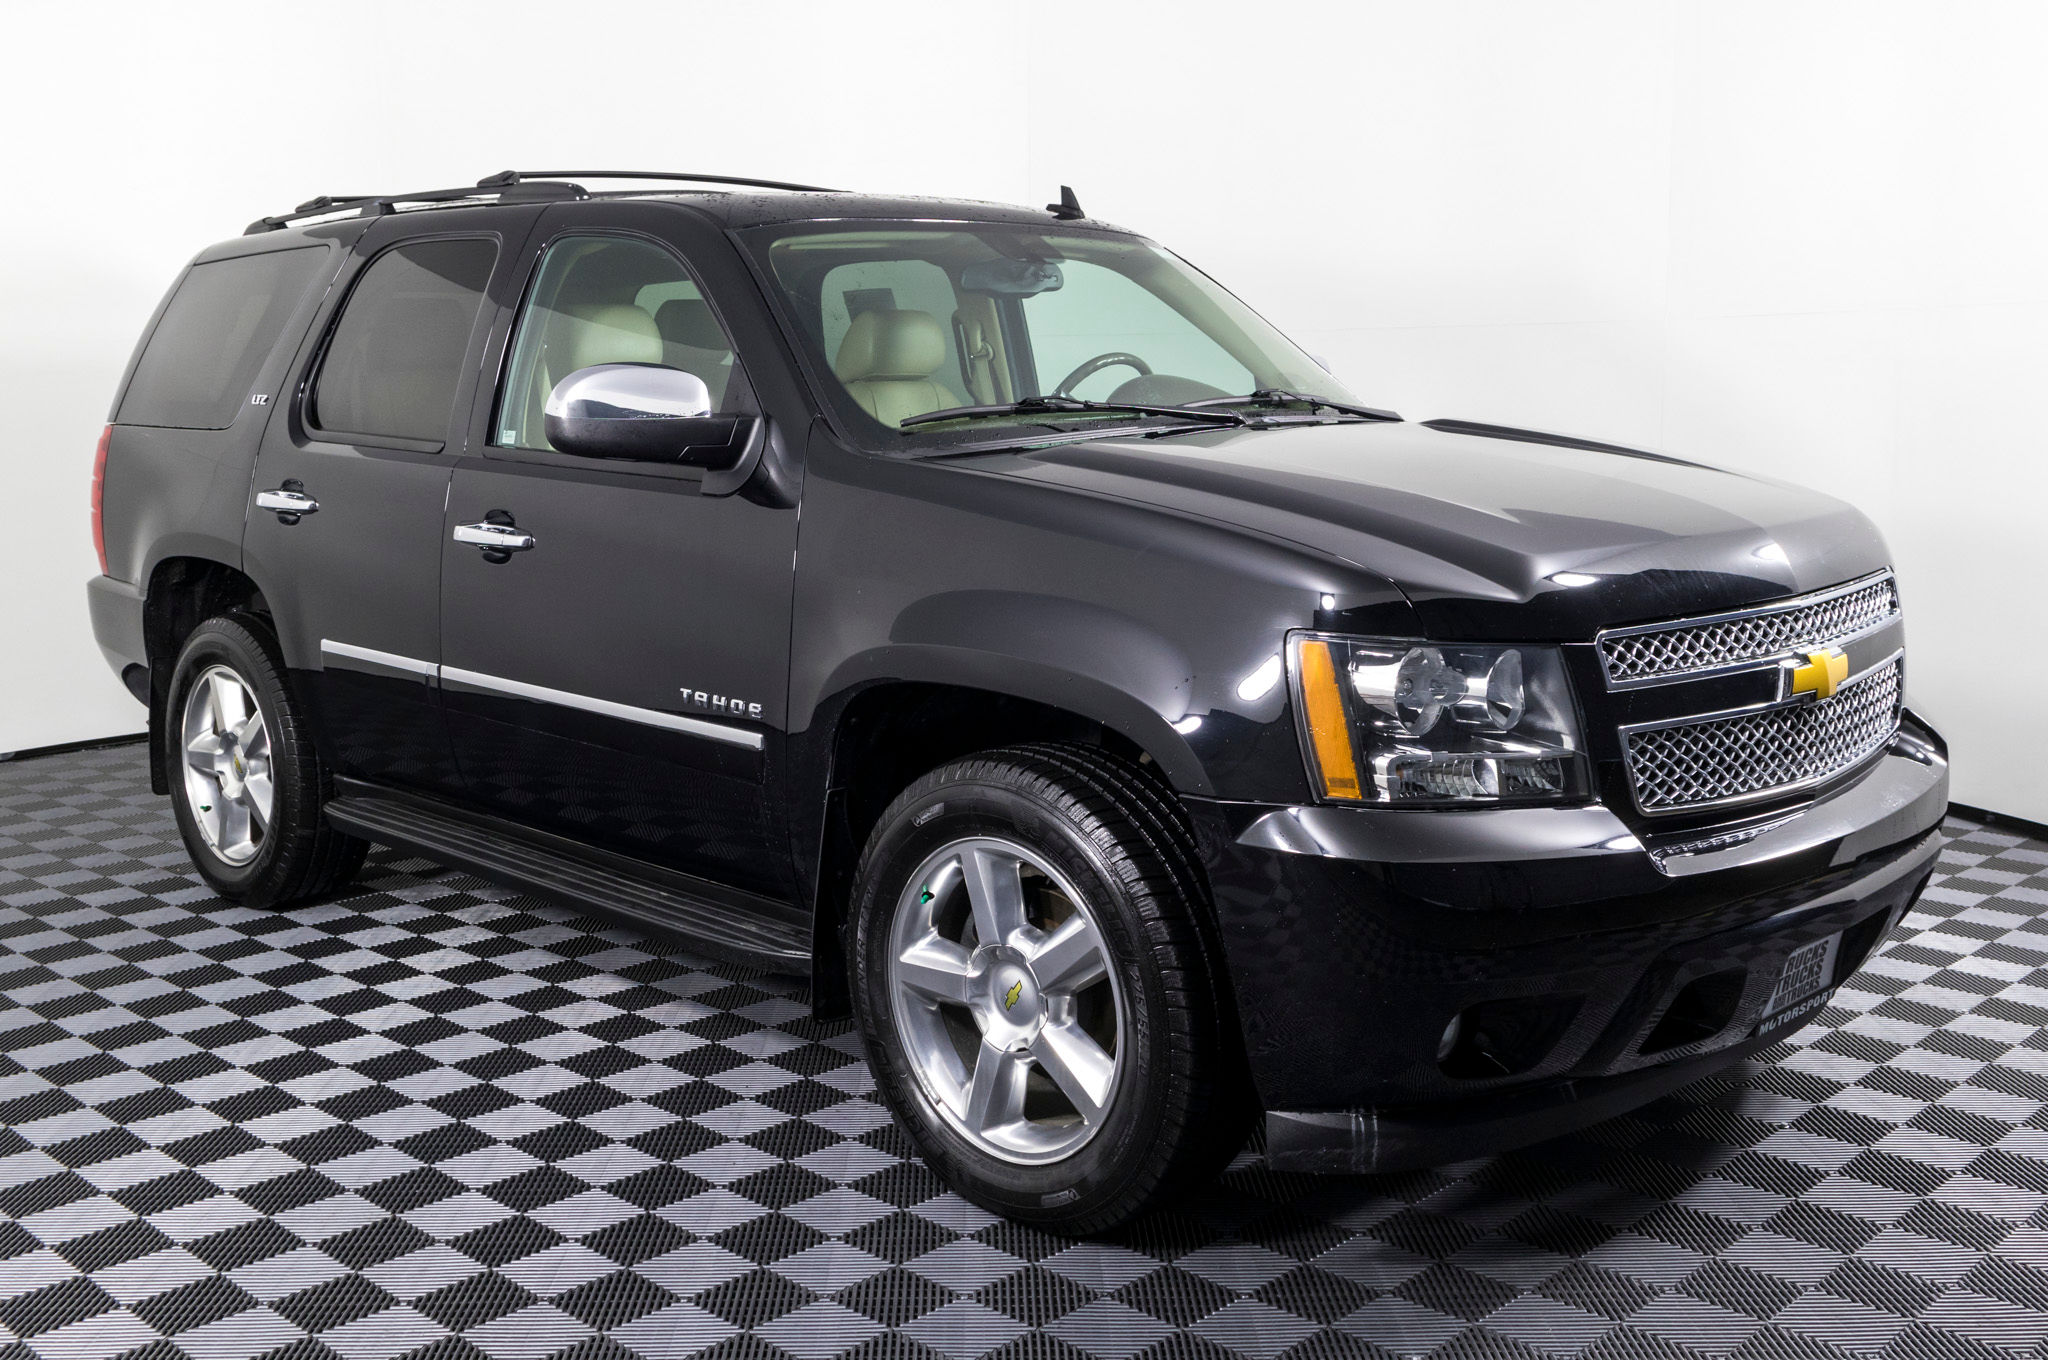 Used 2014 Chevrolet Tahoe LTZ 4x4 SUV For Sale